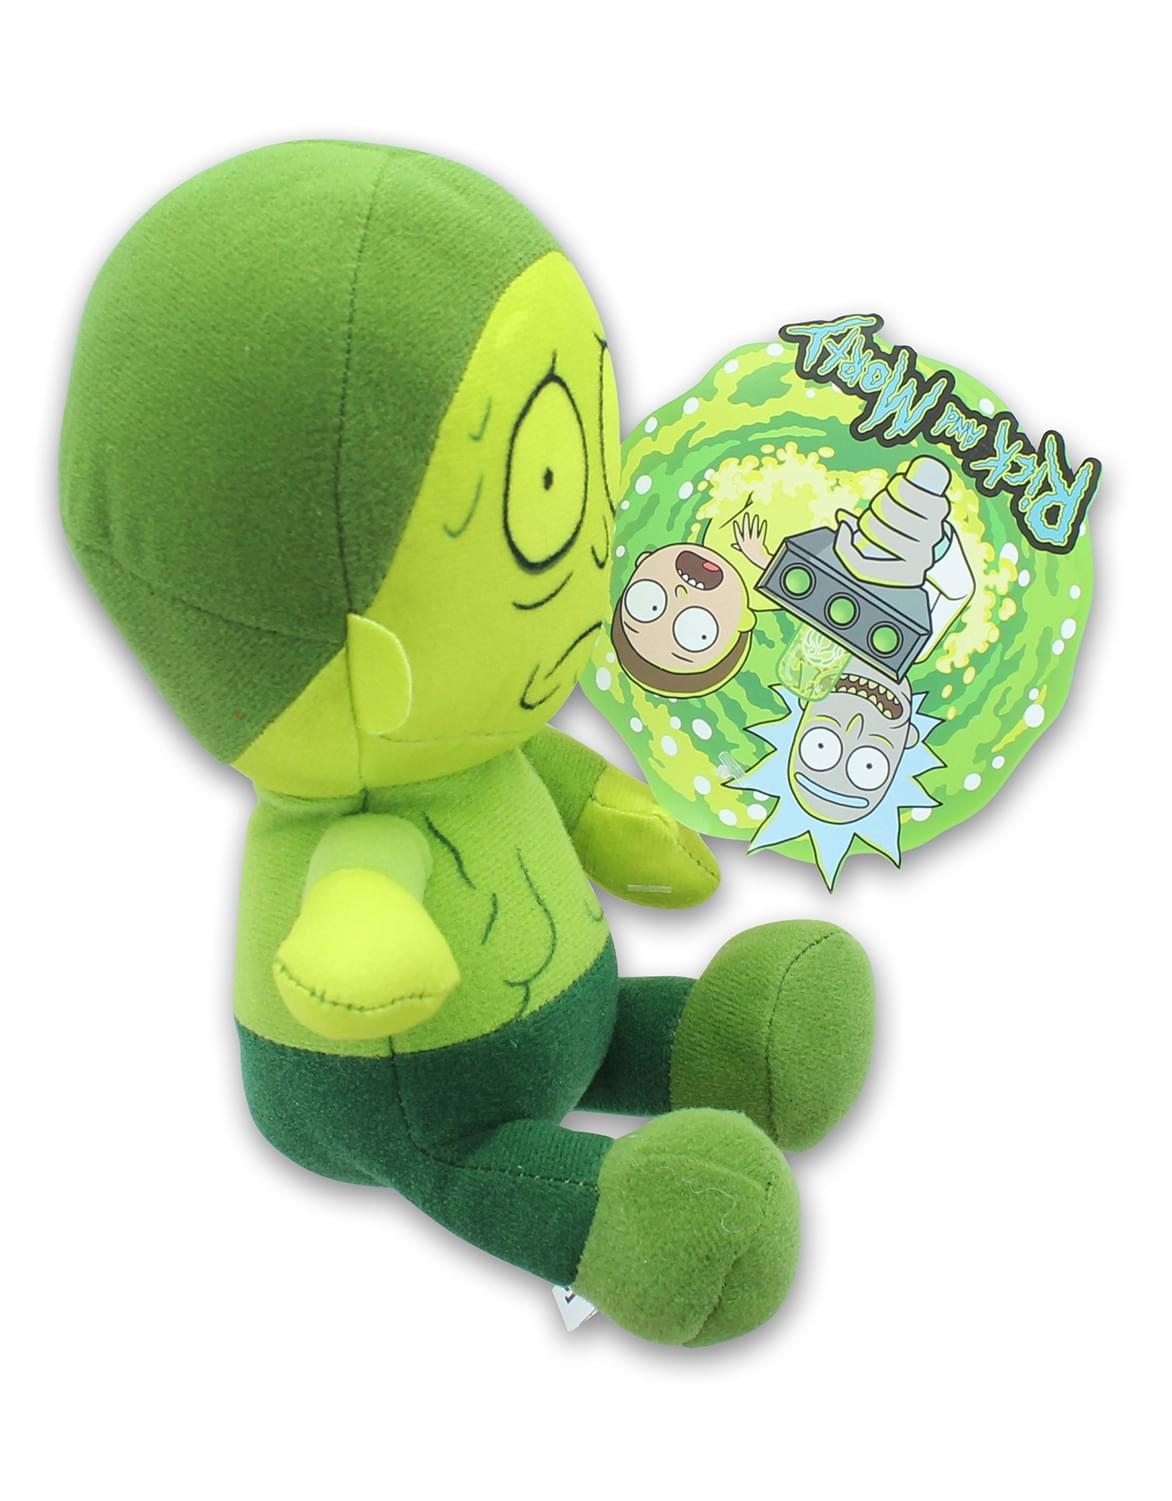 Rick & Morty 8 Inch Stuffed Character Plush | Toxic Morty